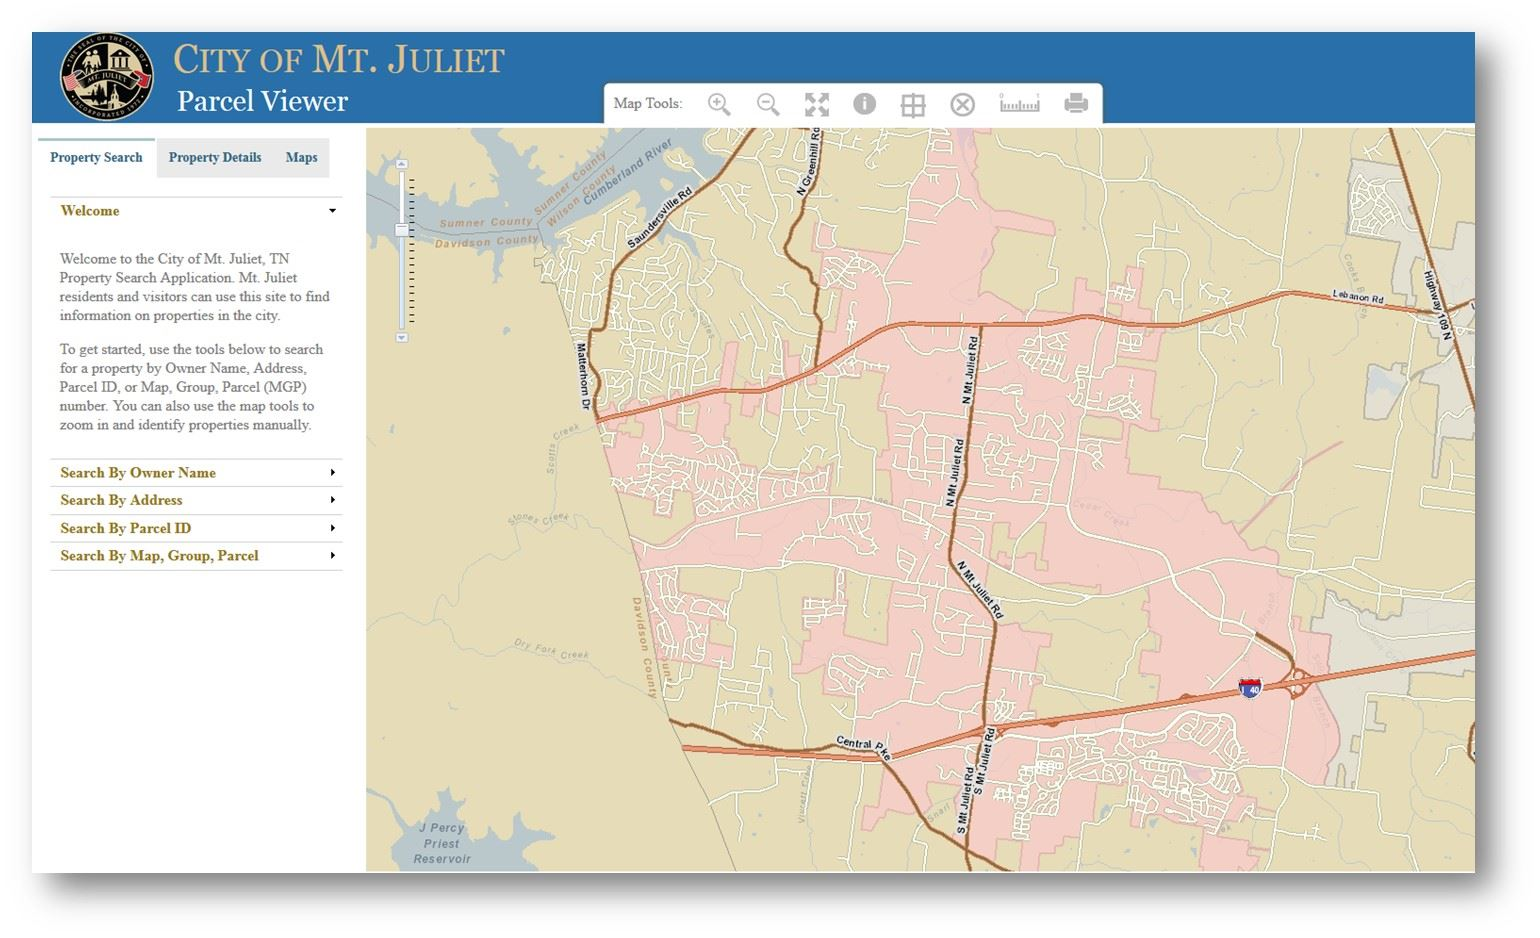 Utilize the interactive map of the City of Mt. Juliet.